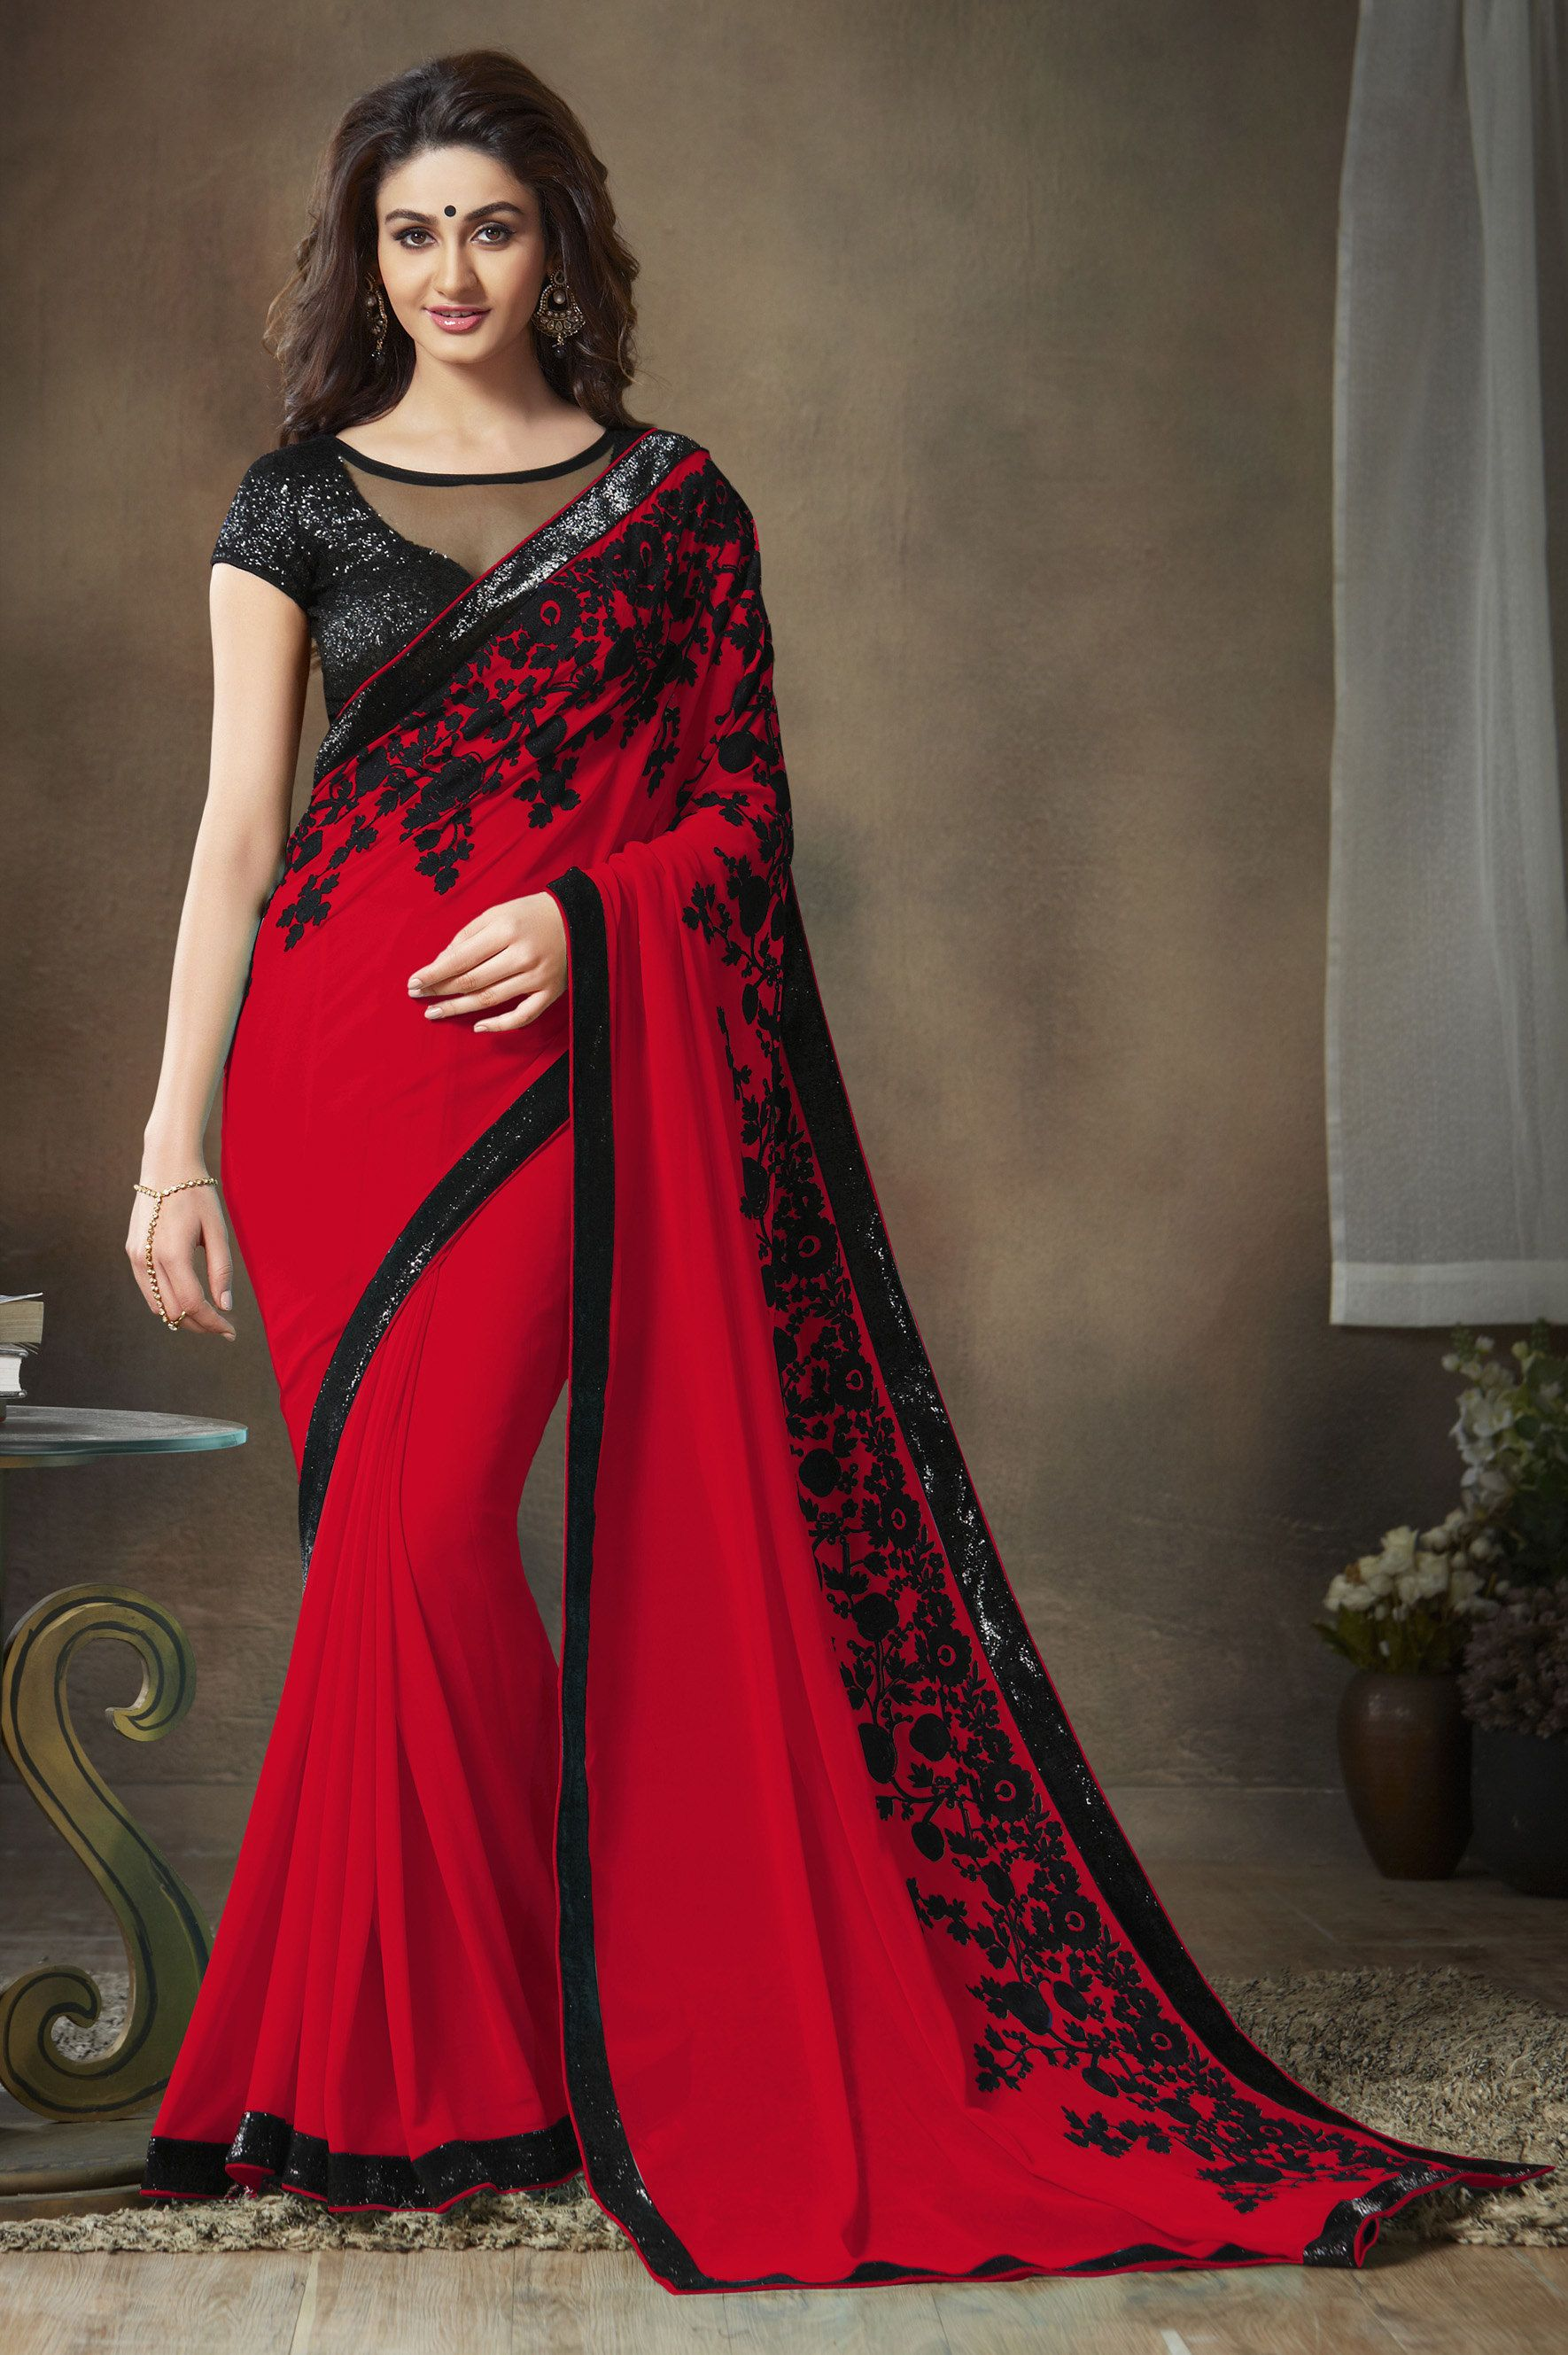 red saree with black floral border. Party wear sarees